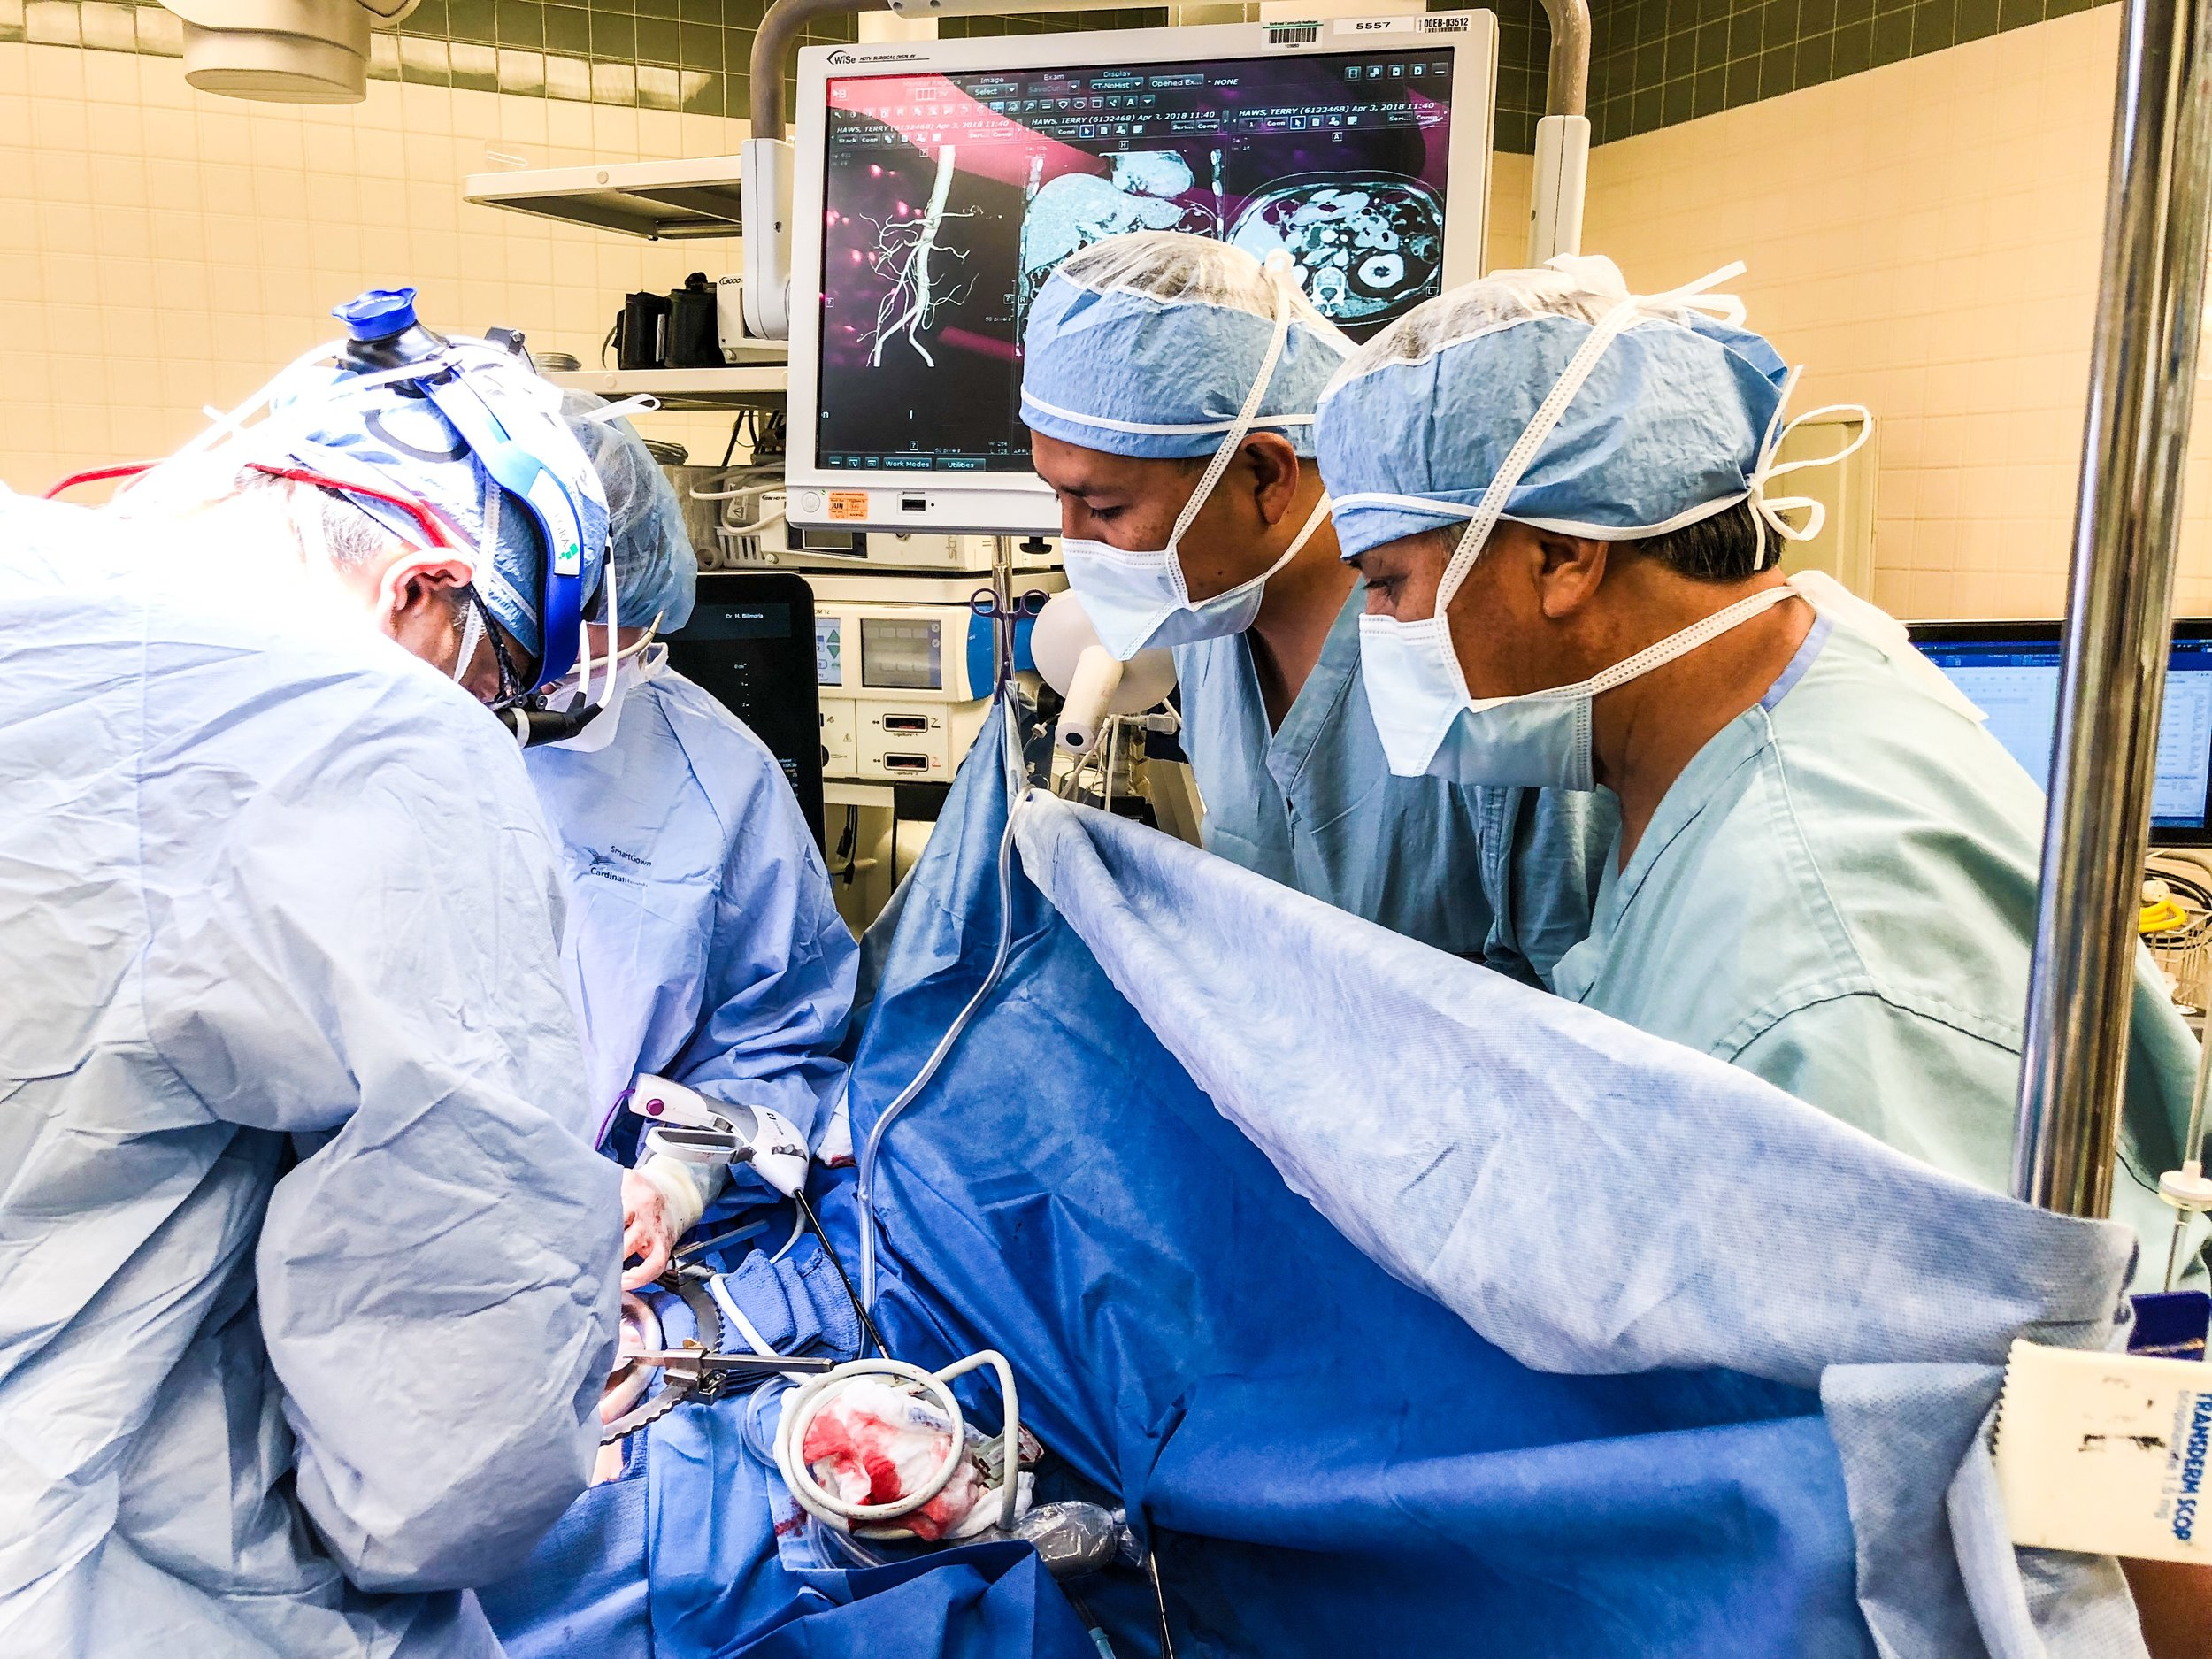 Drs. Vallejos and Camacho observe Dr. Bilimoria in the O.R.